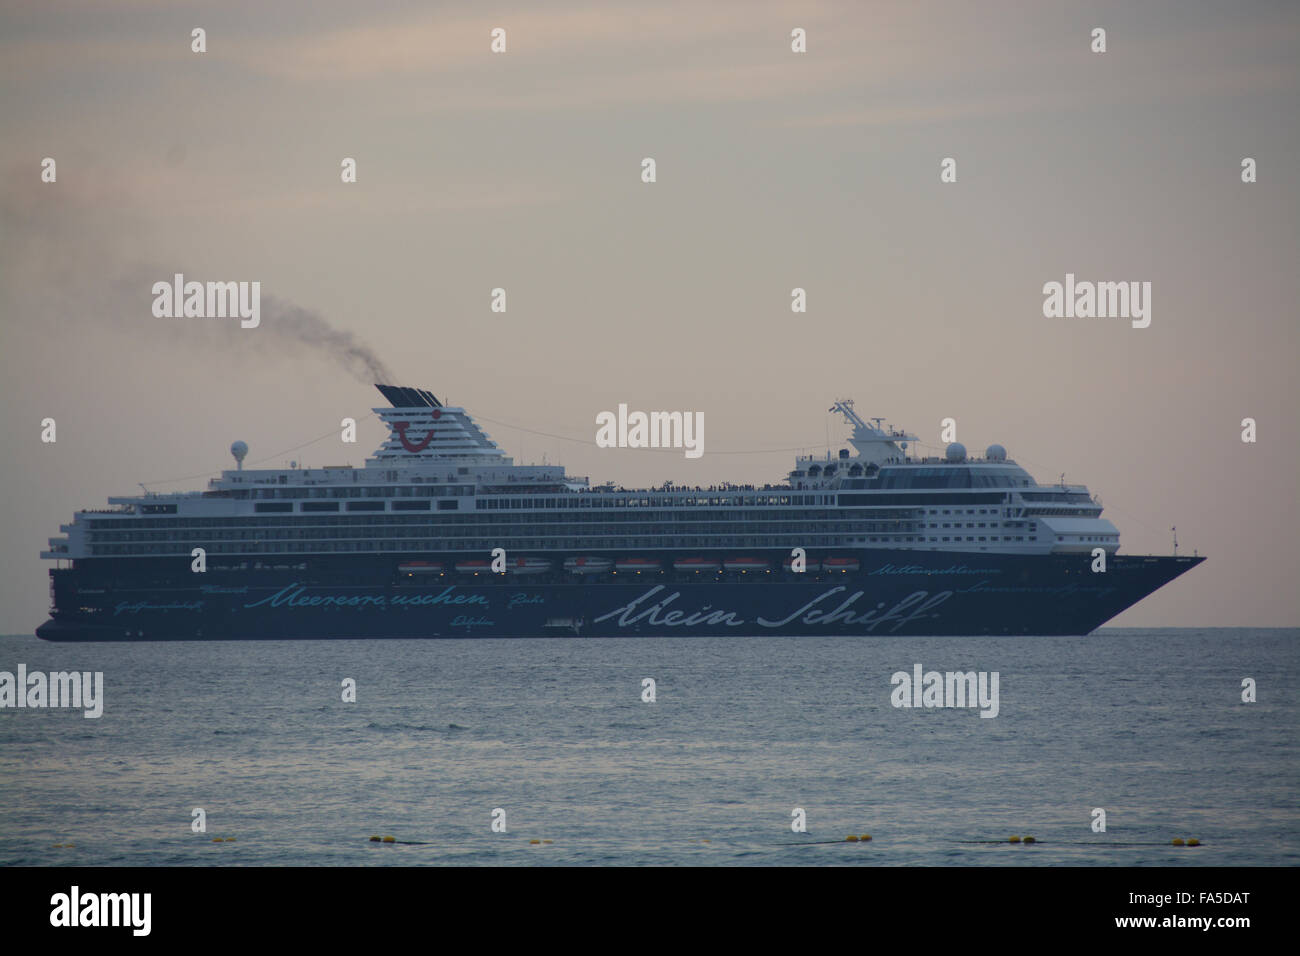 Mein Schiff cruise boat at Patong Beach, Thailand - Stock Image